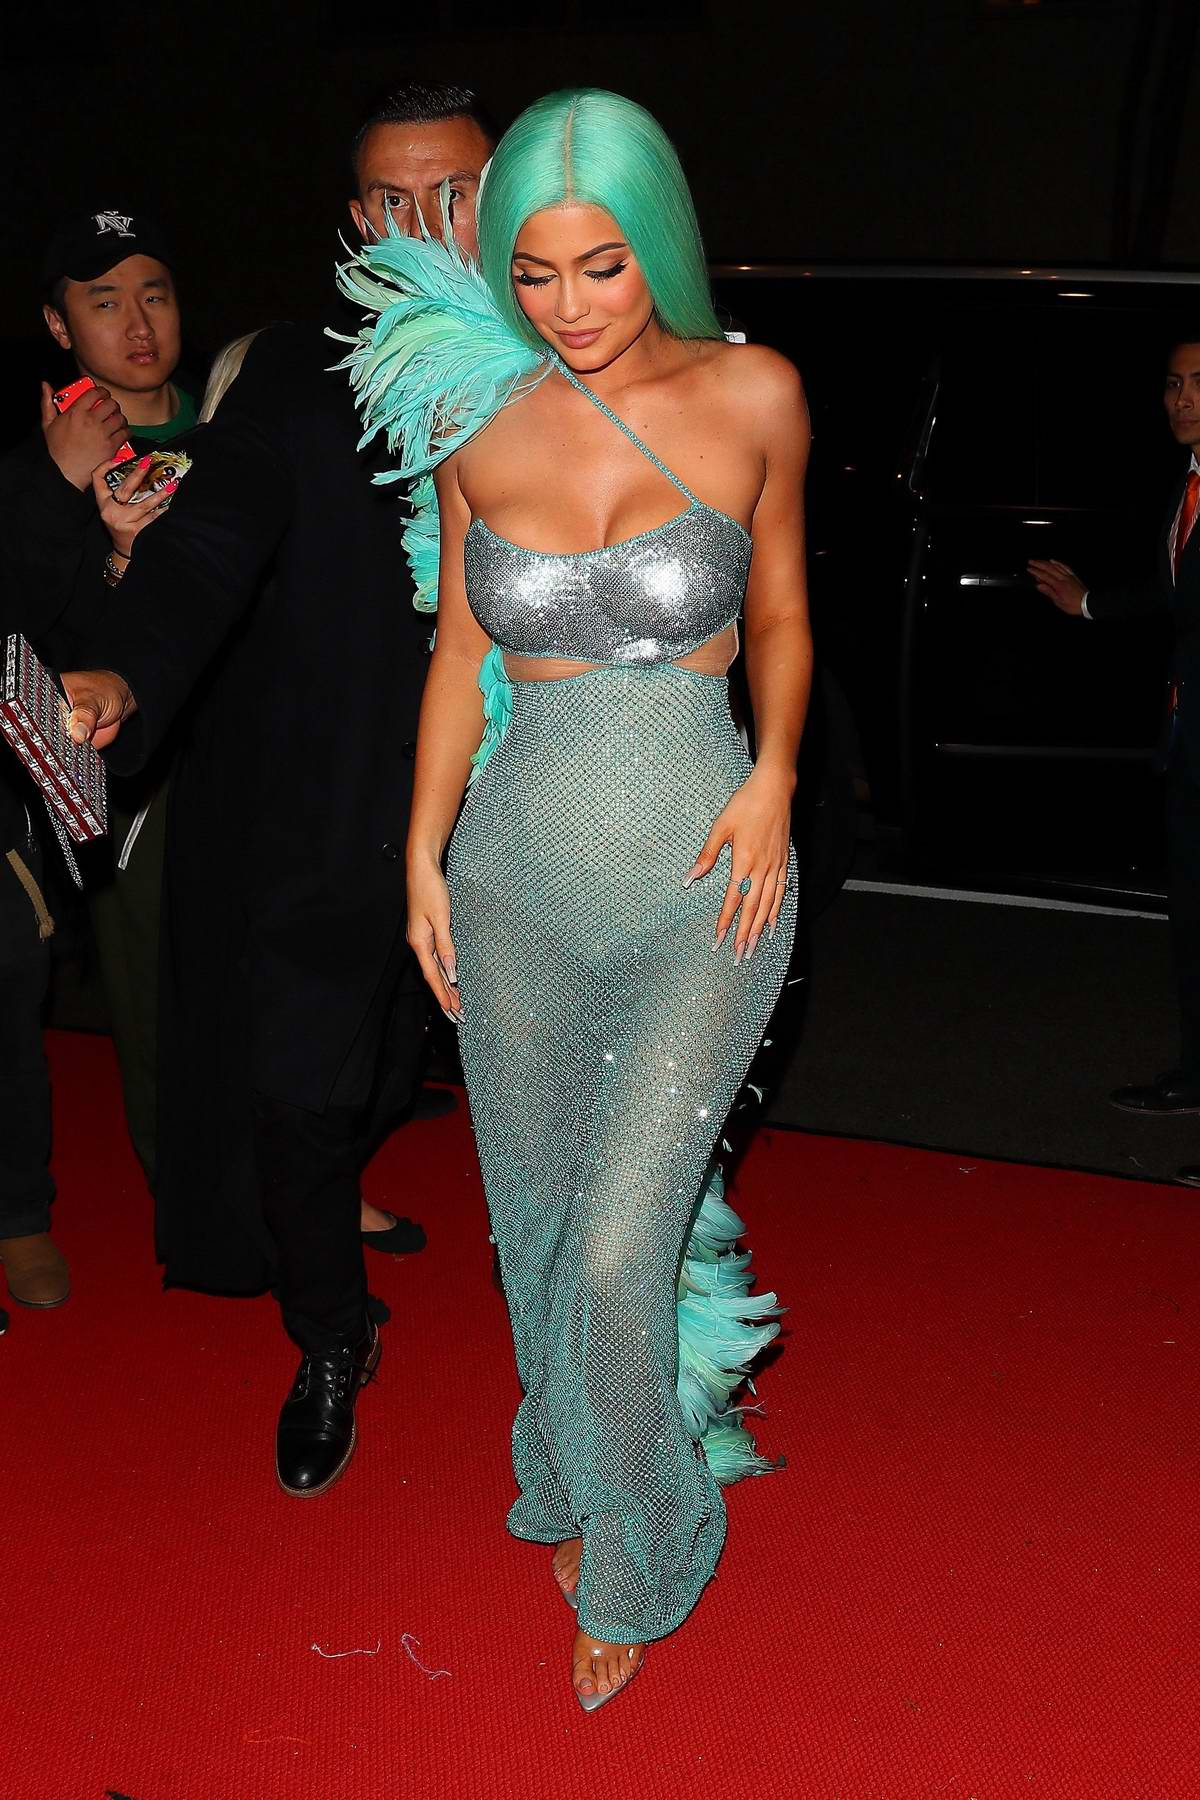 Kylie Jenner dazzles in semi-sheer turquoise dress with matching hair at the 2019 Met Gala after-party in New York City